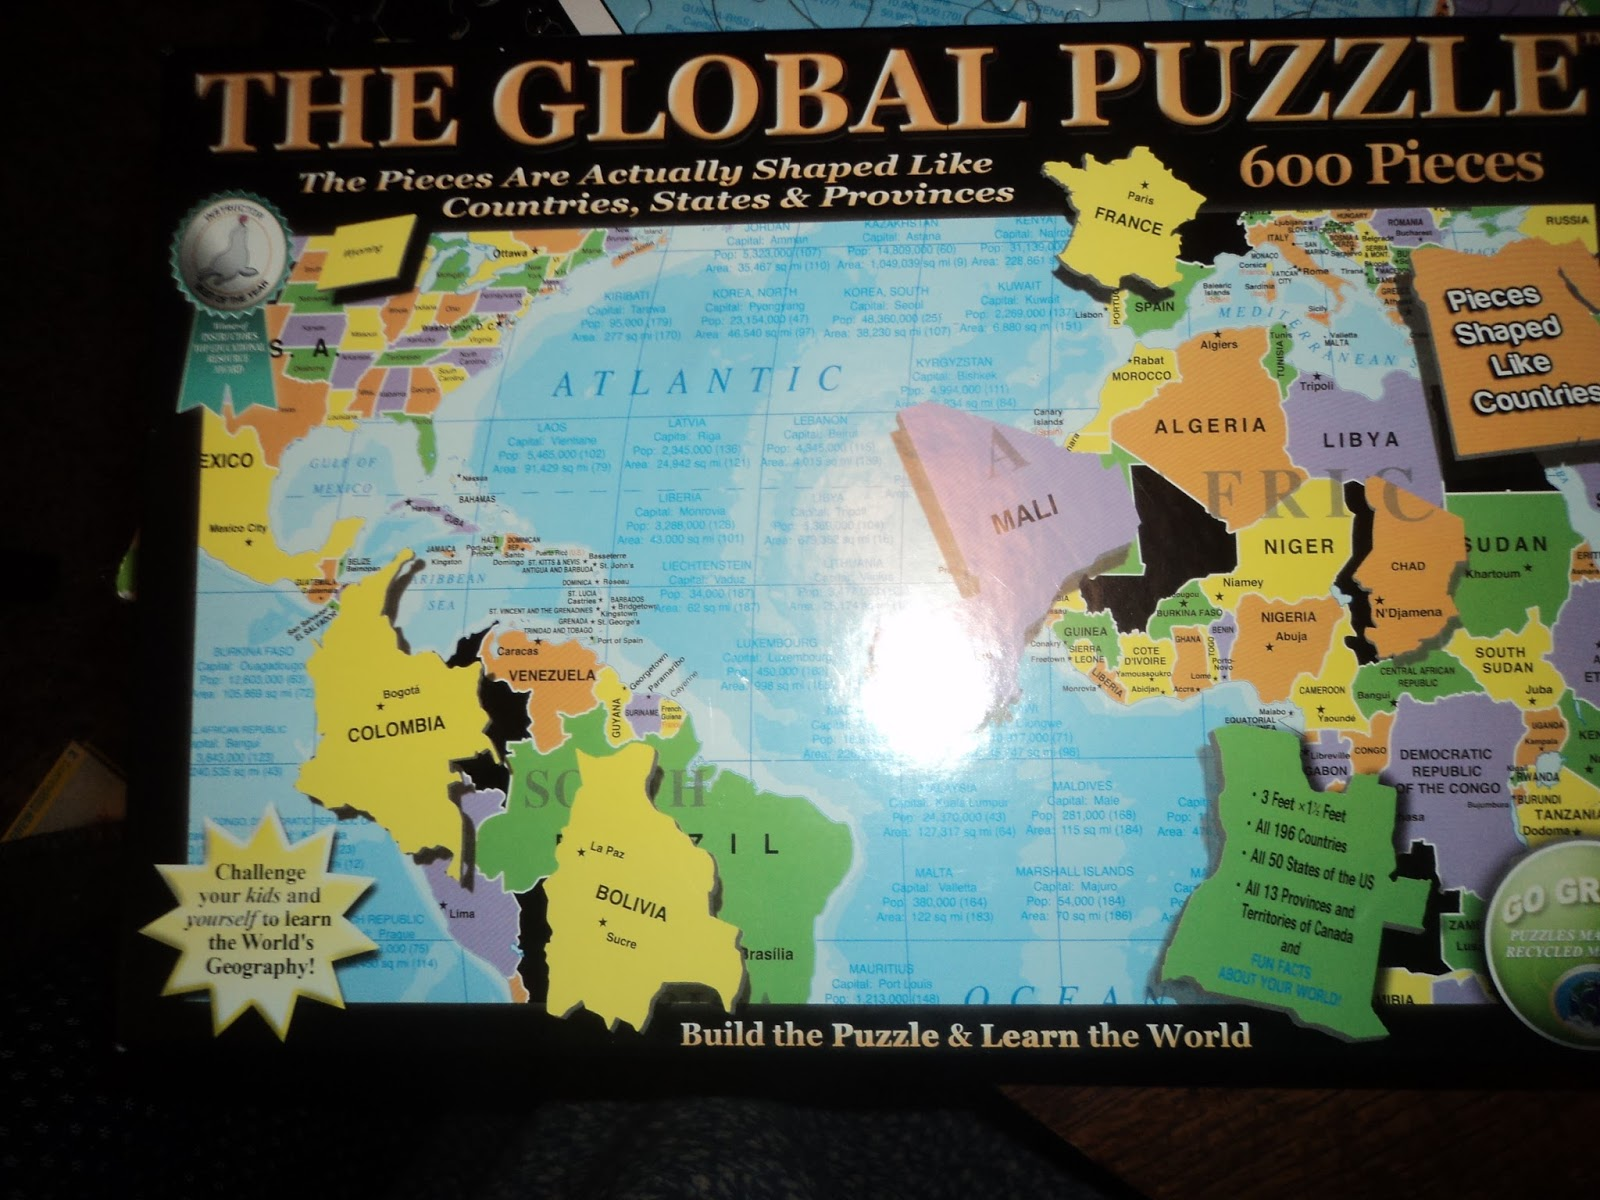 World Map For Sale Amazon. I found it for sale on amazon at this link  http www com Reveal Ent The Global Puzzle dp B00007J5X9 the Plain Professors What a Wonderful World